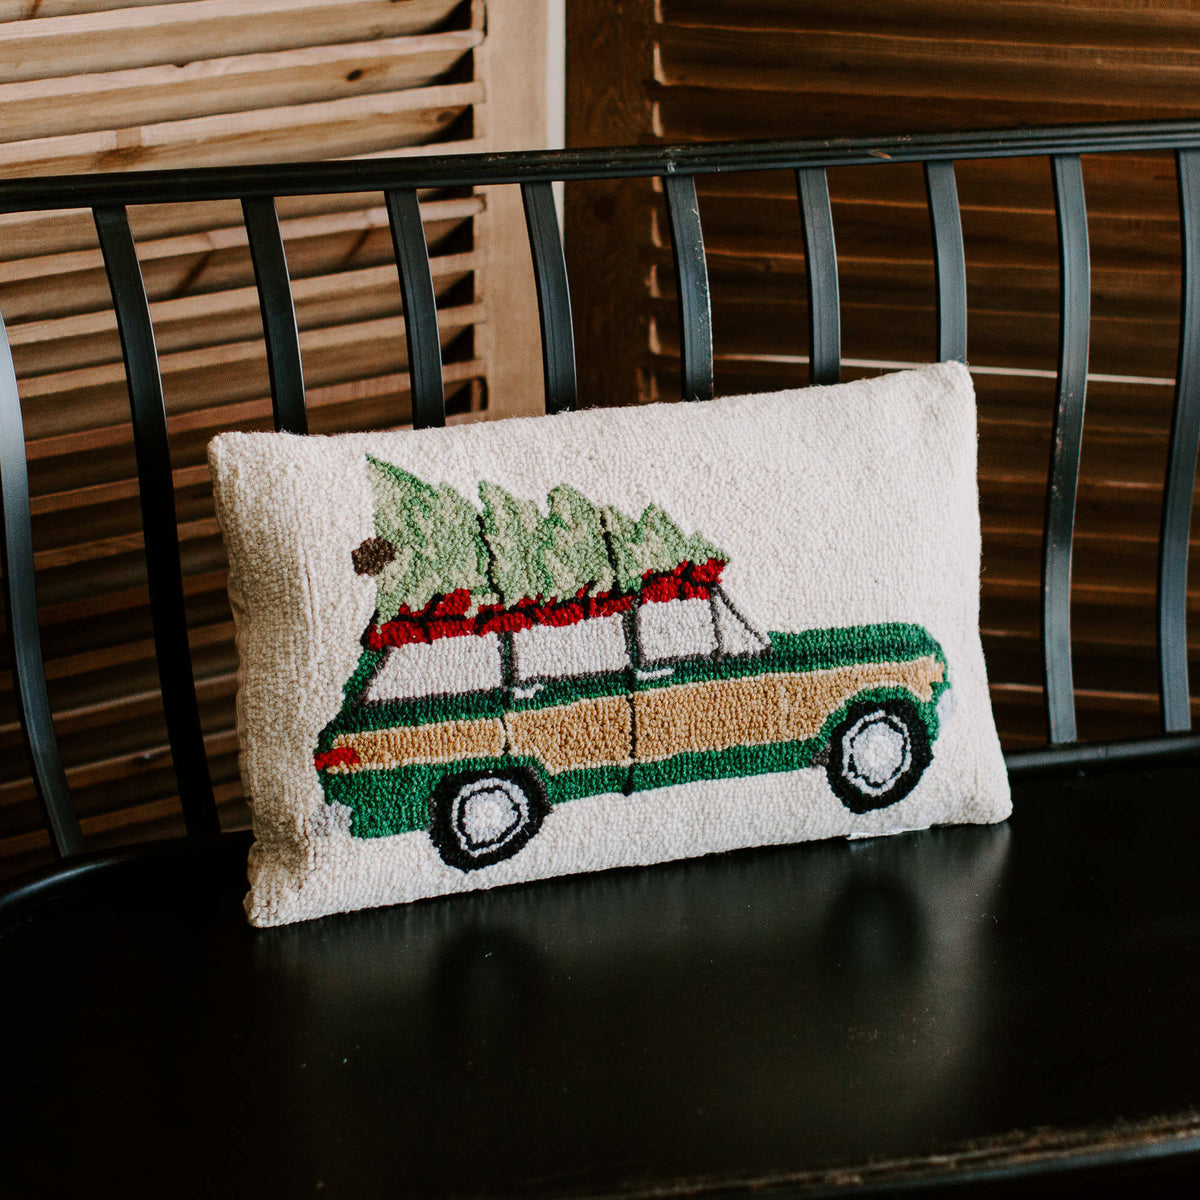 Vintage wool loop pillow with an old jeep carrying a Christmas tree on top, resting on a black bench